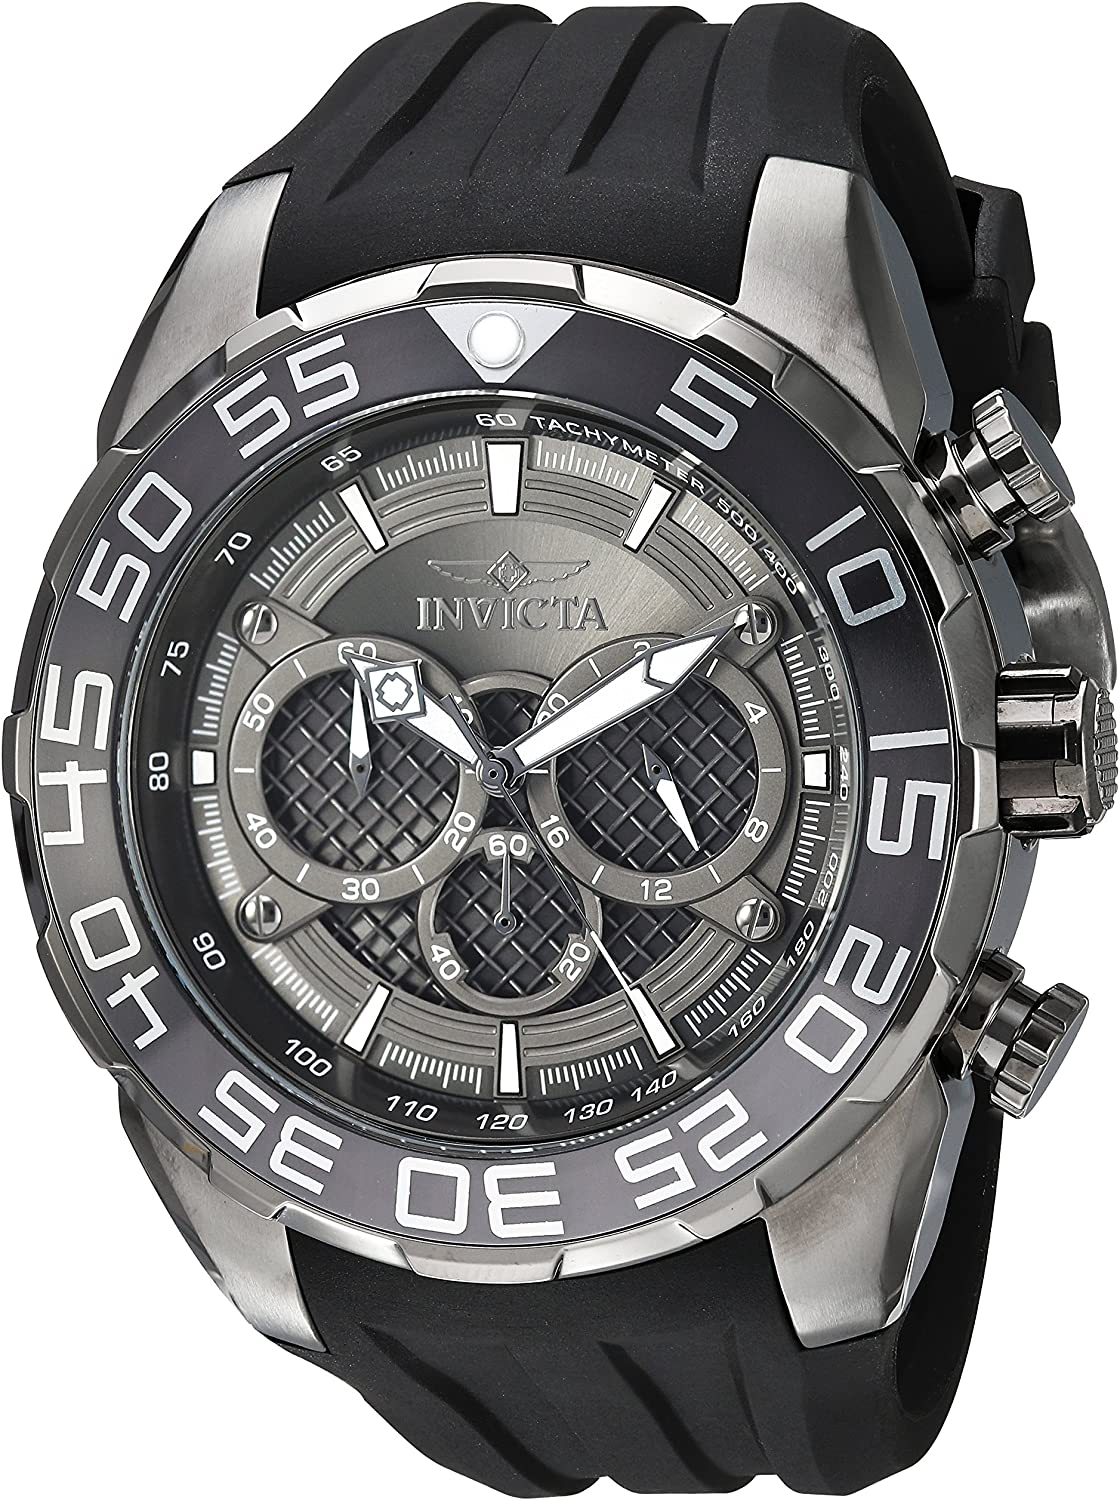 Invicta Men s Speedway Stainless Steel Quartz Watch with Silicone Strap, Black, 30 Model 26308